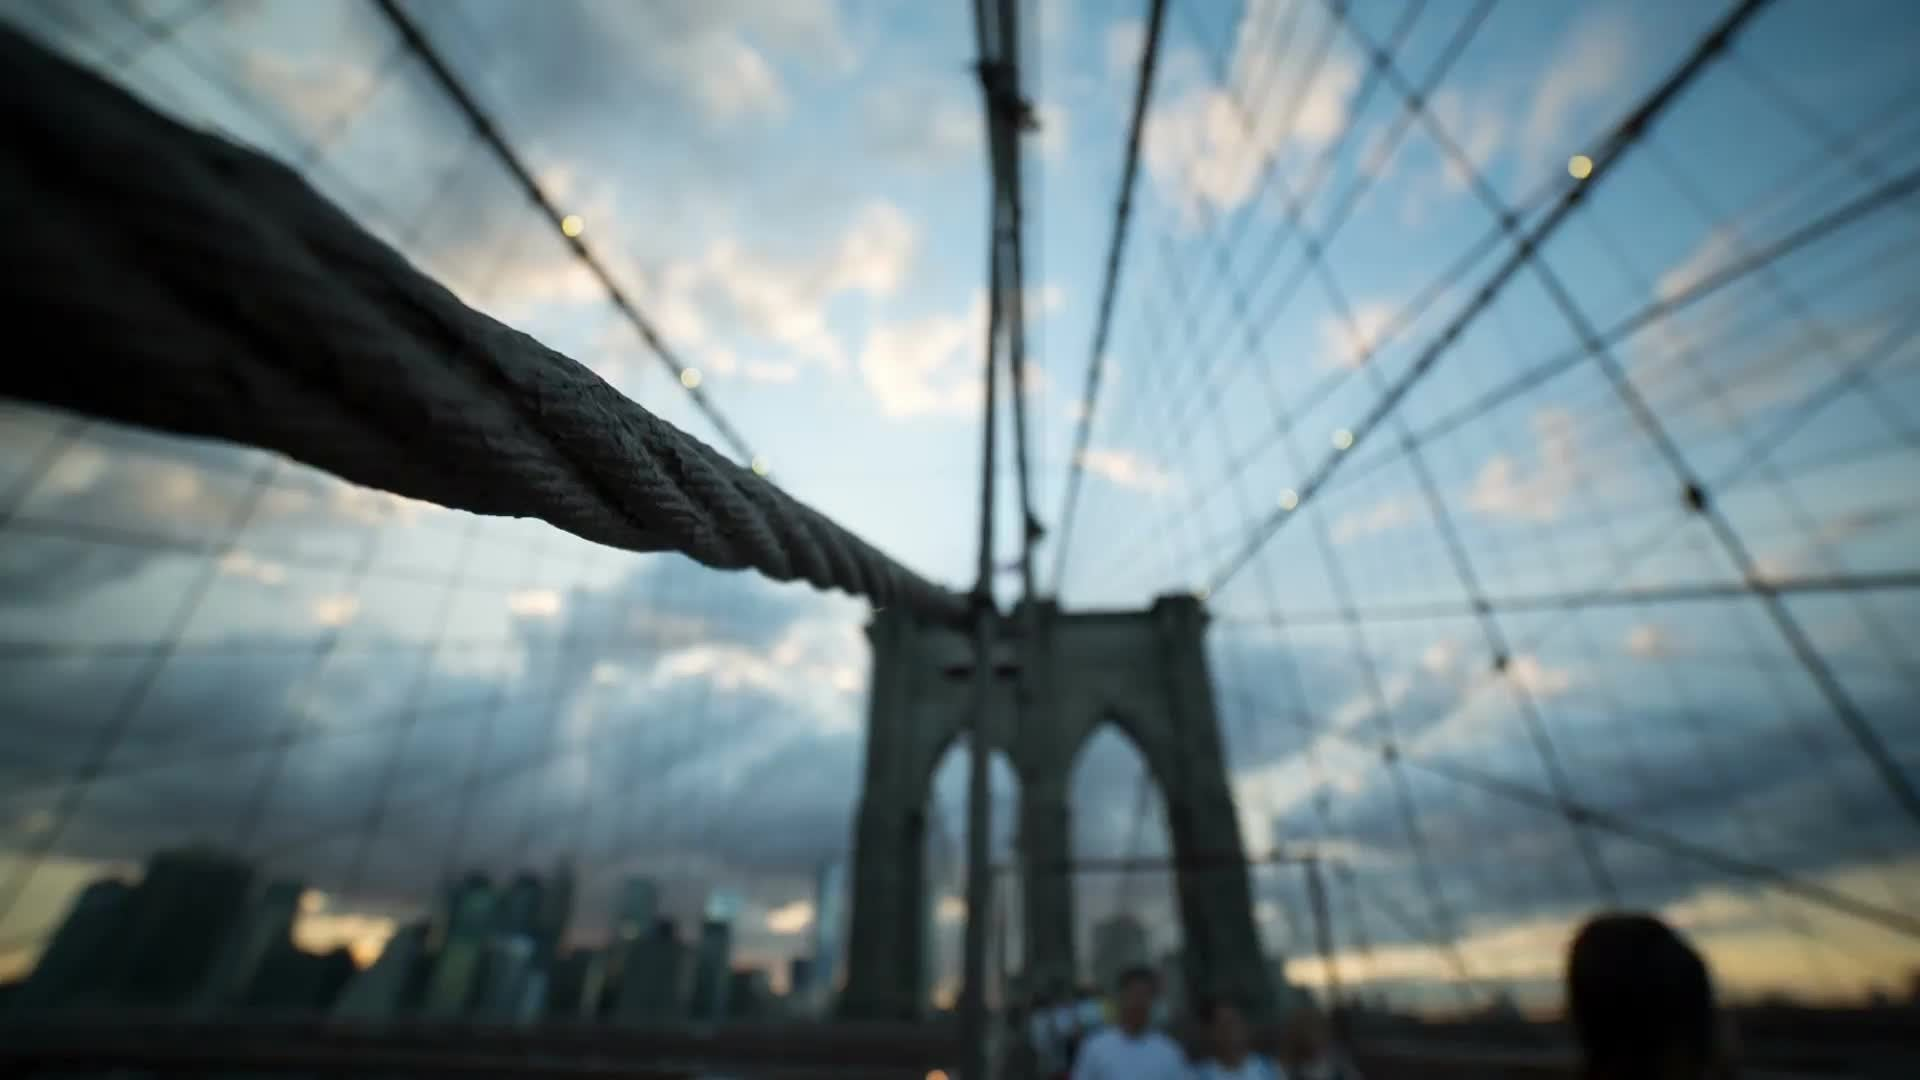 Brooklyn Bridge close-up of suspension cables, people crossing on pedestrian walkway at sunset with Manhattan skyline